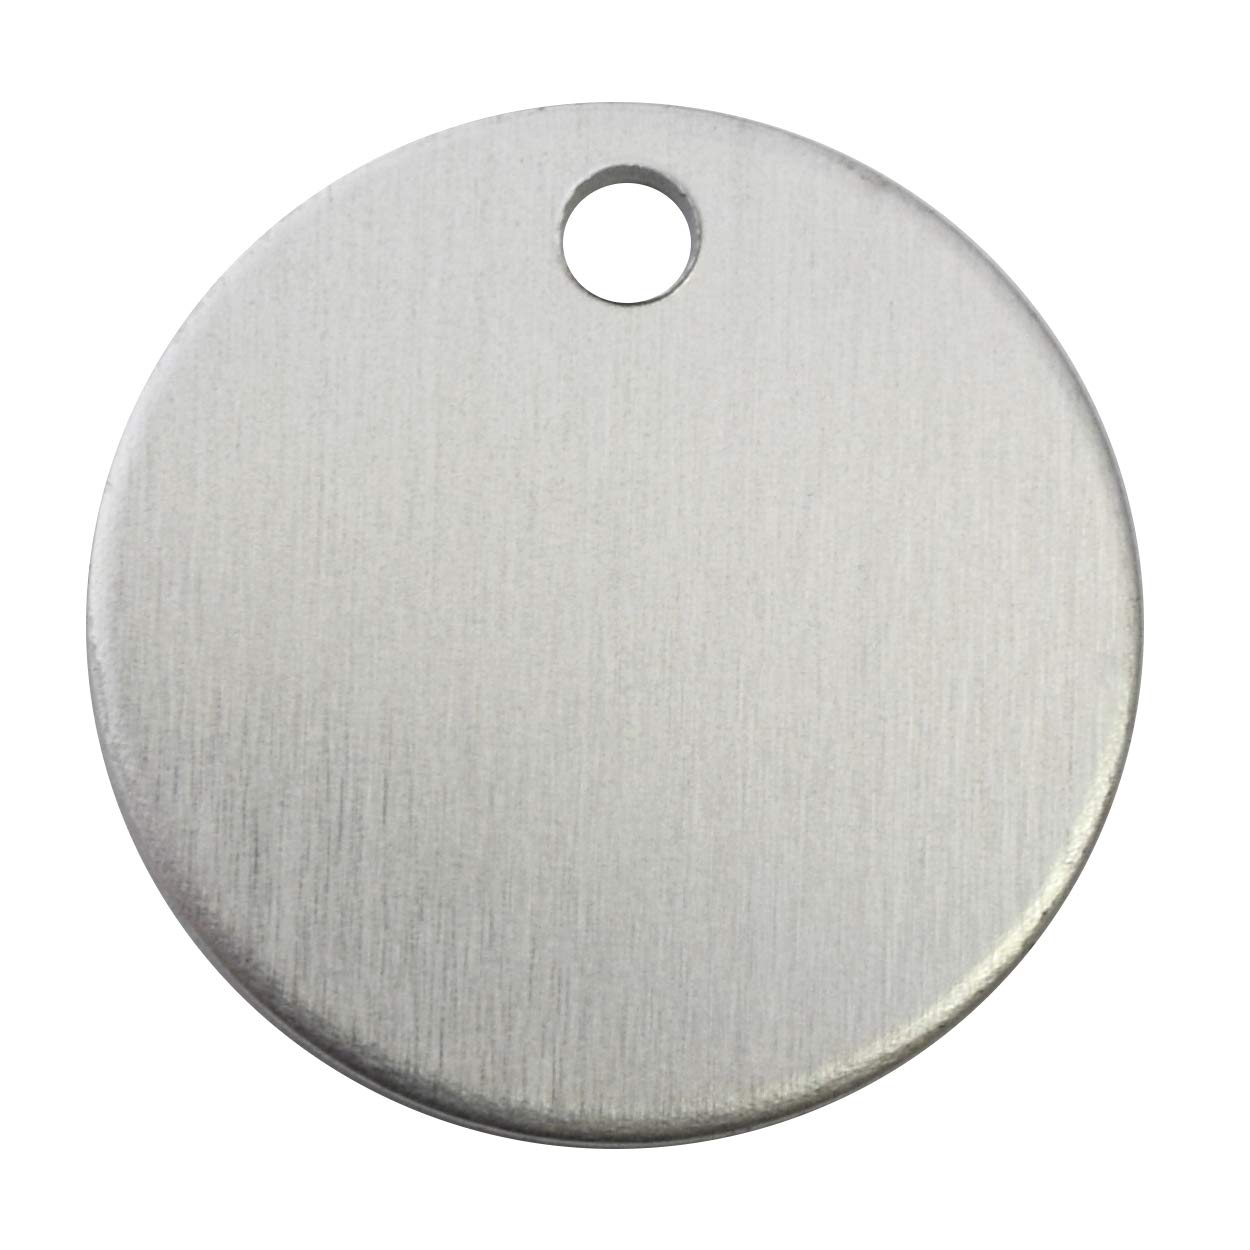 RMP Stamping Blanks, 1 Inch Round with Hole, Aluminum 0.063 Inch (14 Ga.) - 100 Pack by RMP